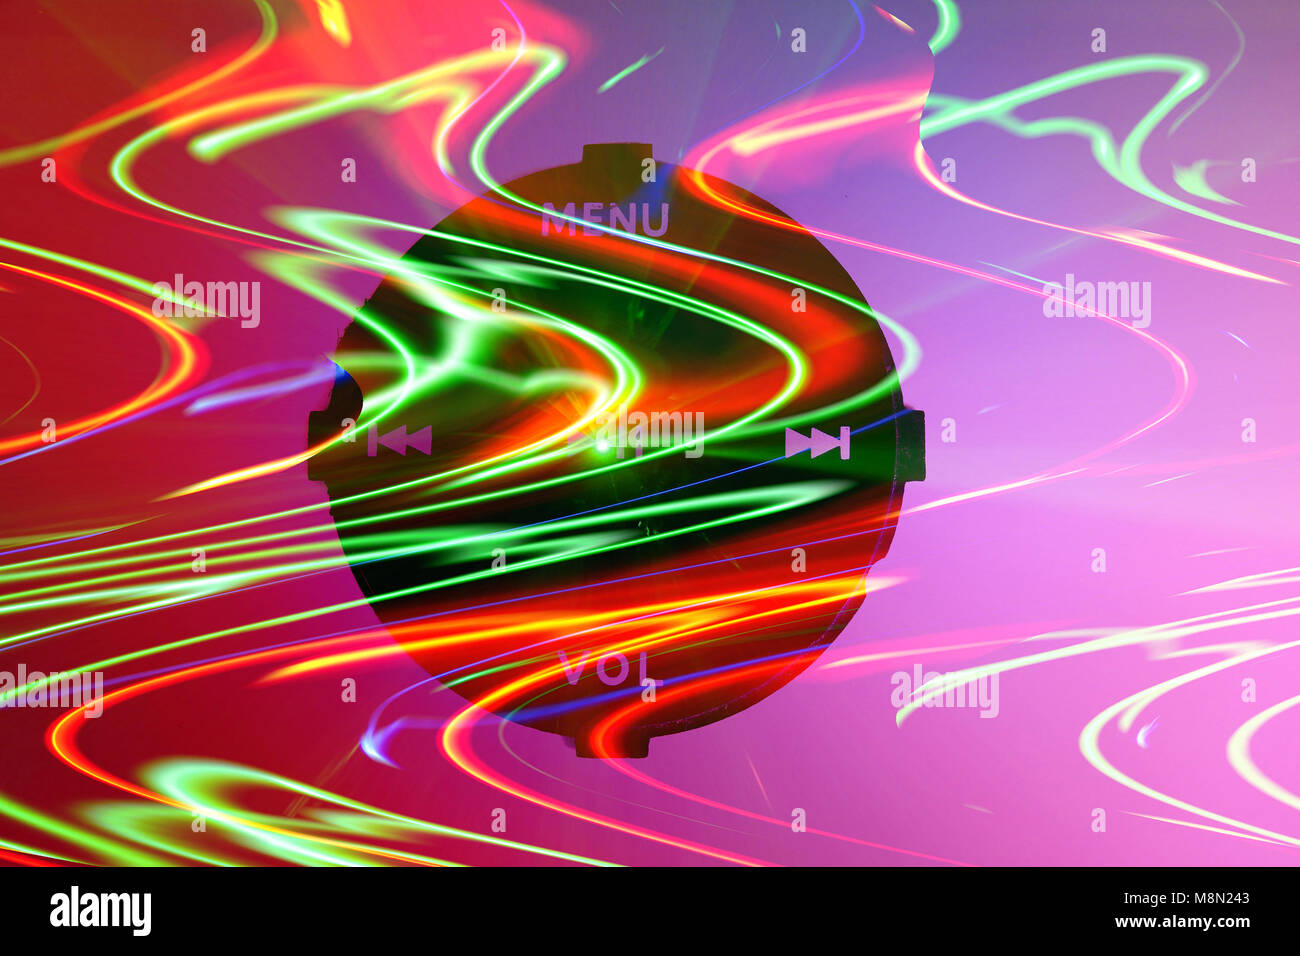 An abstract image of musical controls in colorful waving dance lights - Stock Image